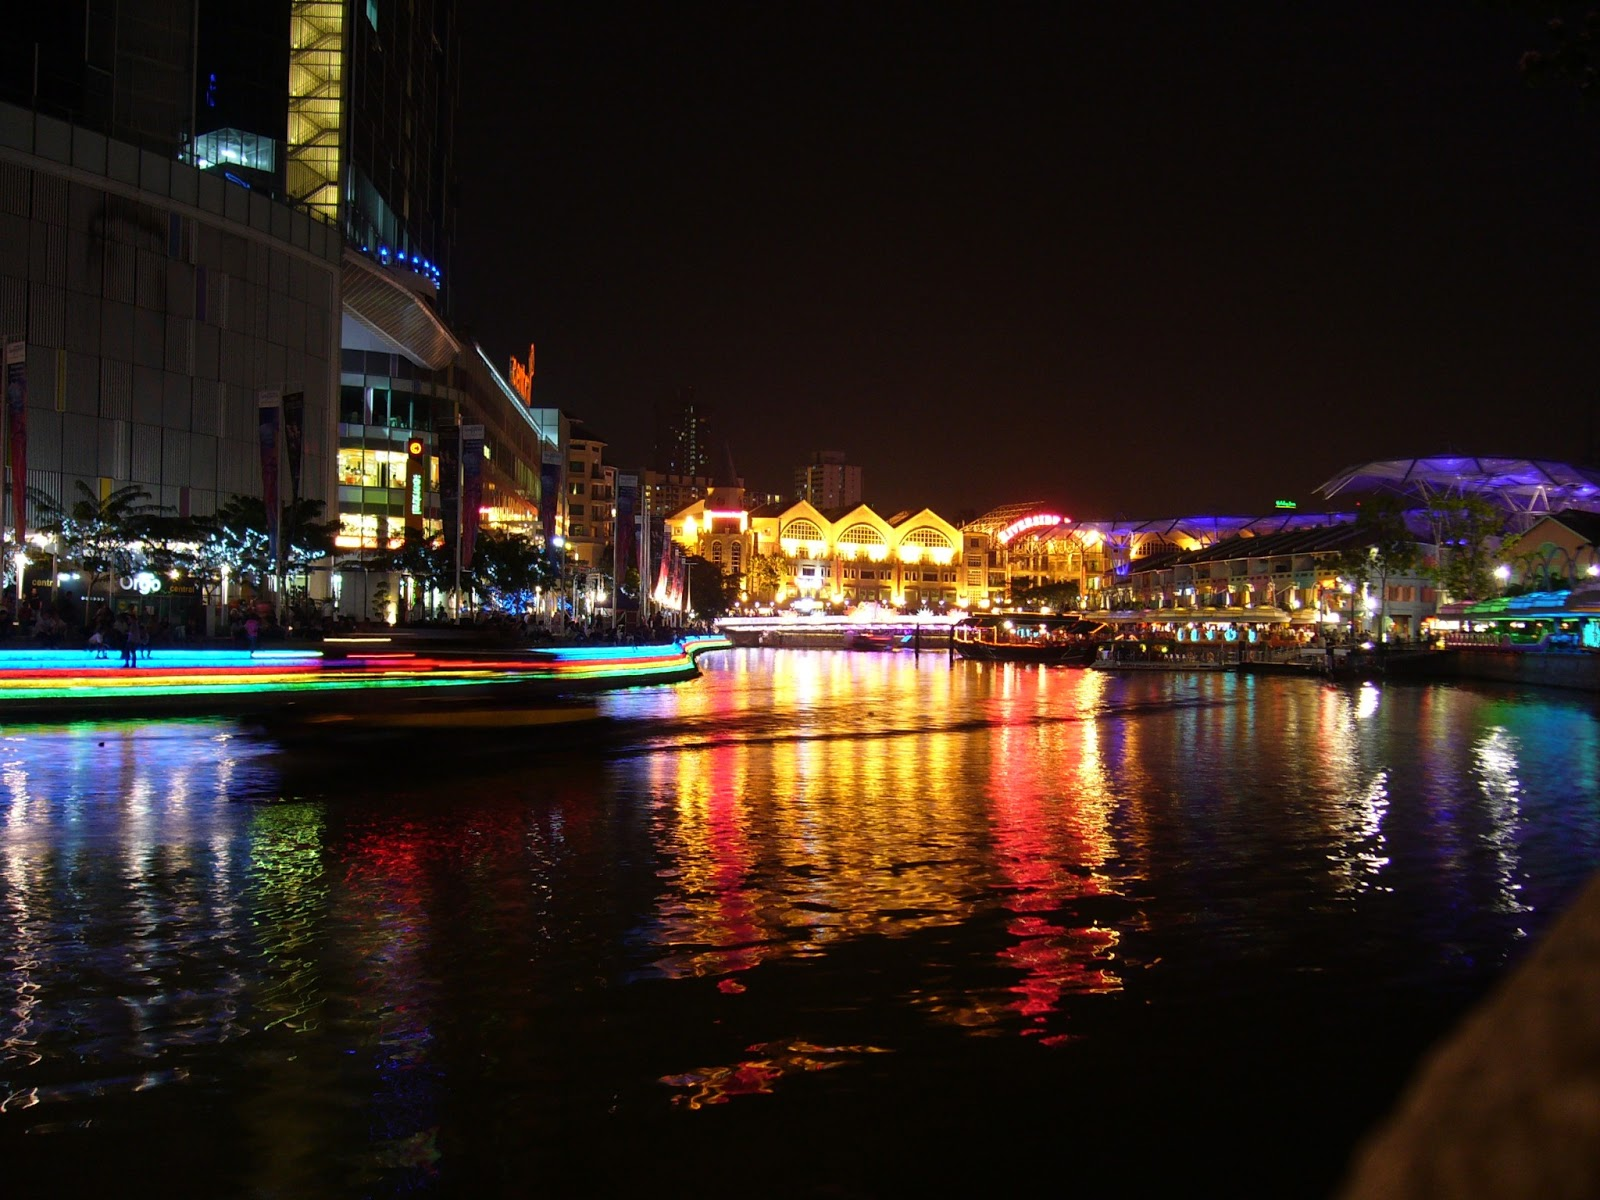 http://4.bp.blogspot.com/-BP120sXxXD0/UPvSdeCpx6I/AAAAAAAAHts/Lg9894Hfk_s/s1600/Clarke+quay+night+skyline+hd+wallpaper.jpg